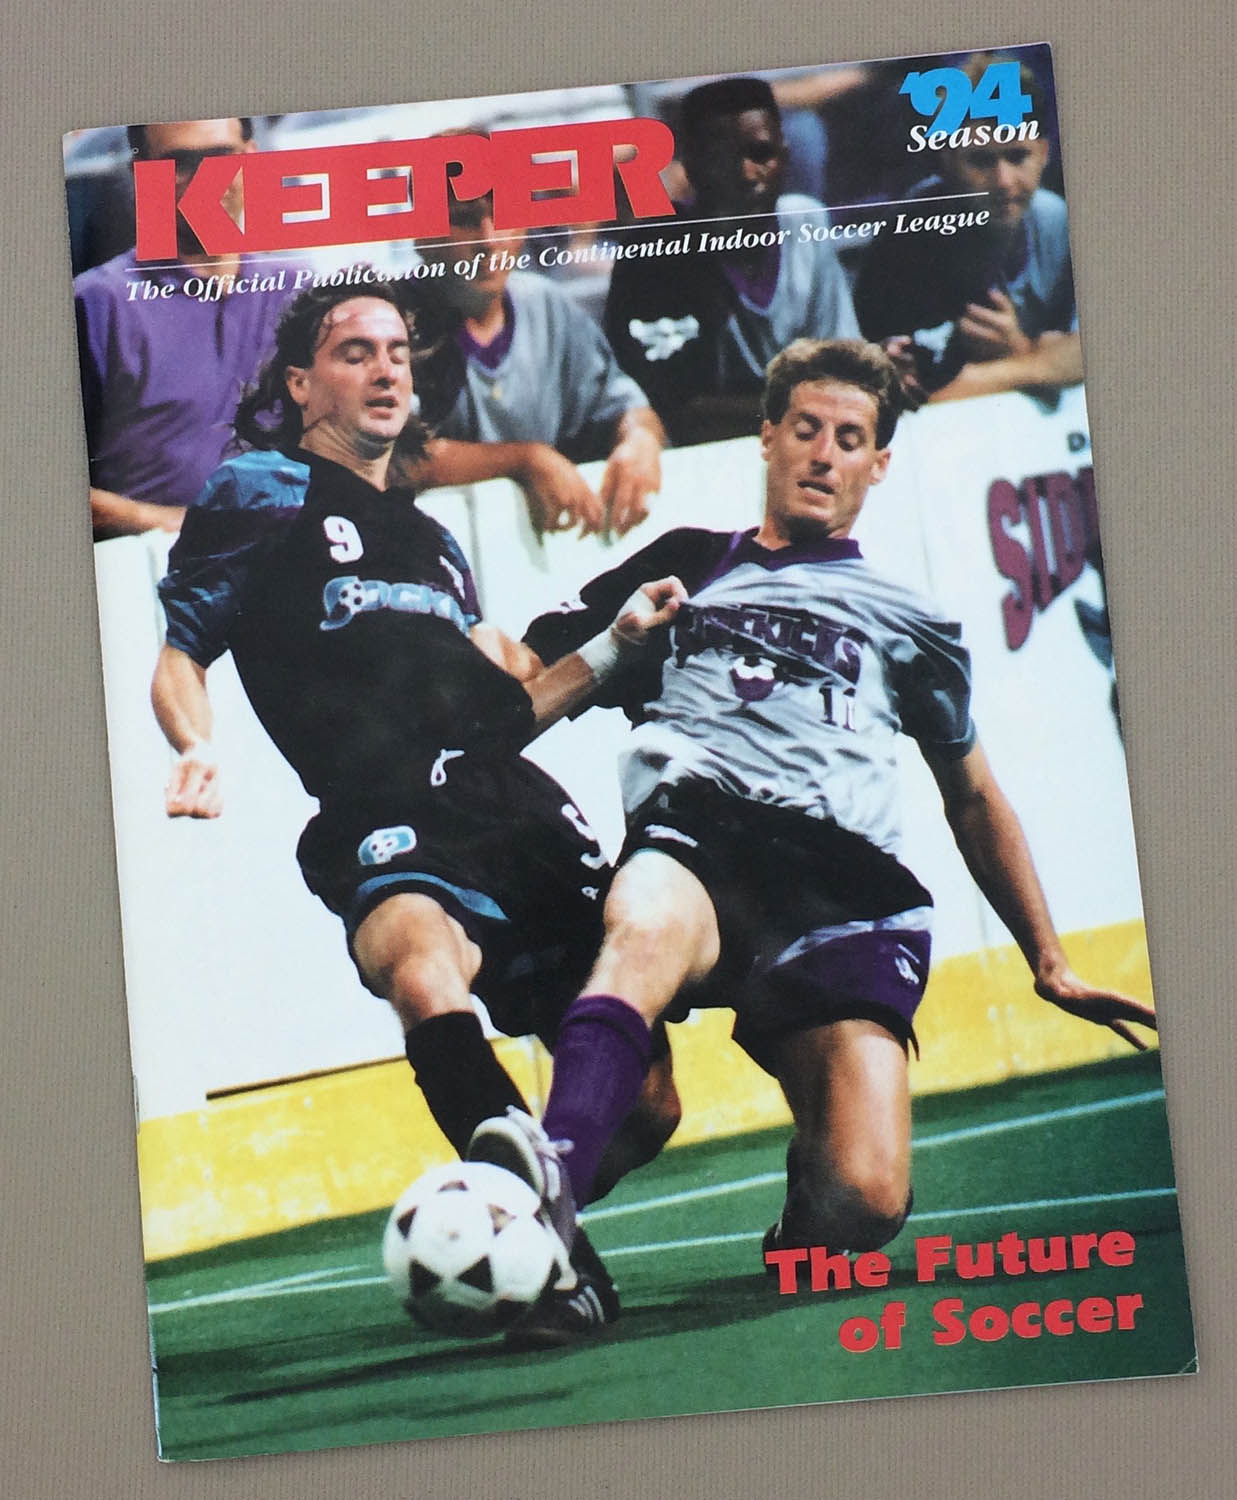 Keeper CISL 1994 Yearbook